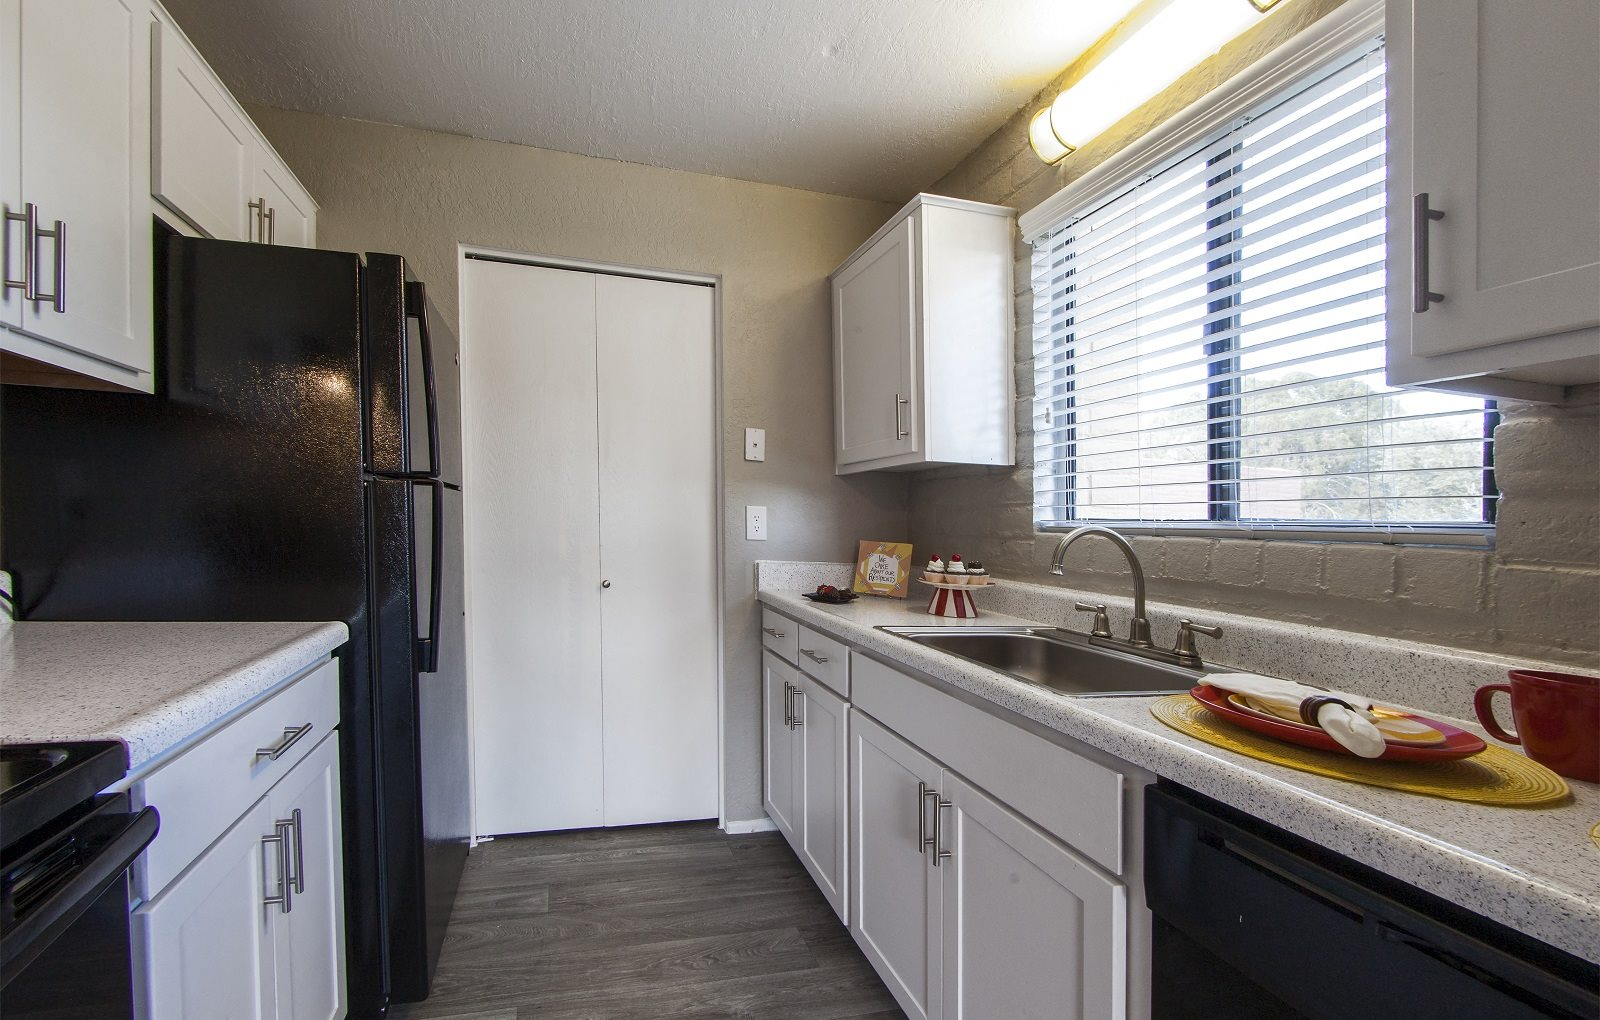 Kitchen at Mission Palms Apartments in Tucson, AZ